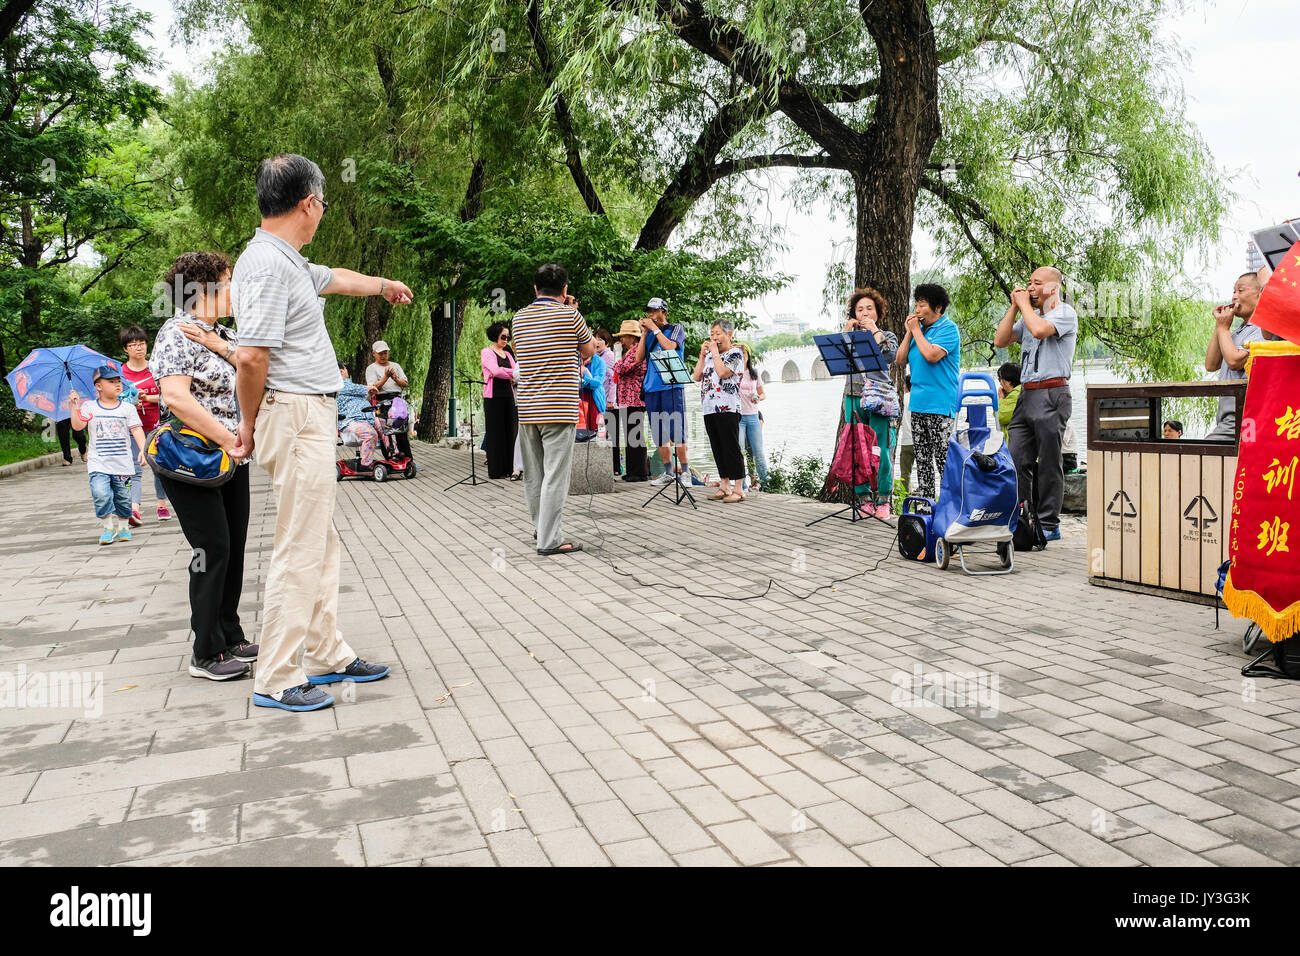 A group of retired Chinese men and women practicing harmonica in Yu Yuan Tan park in Beijing, China - Stock Image